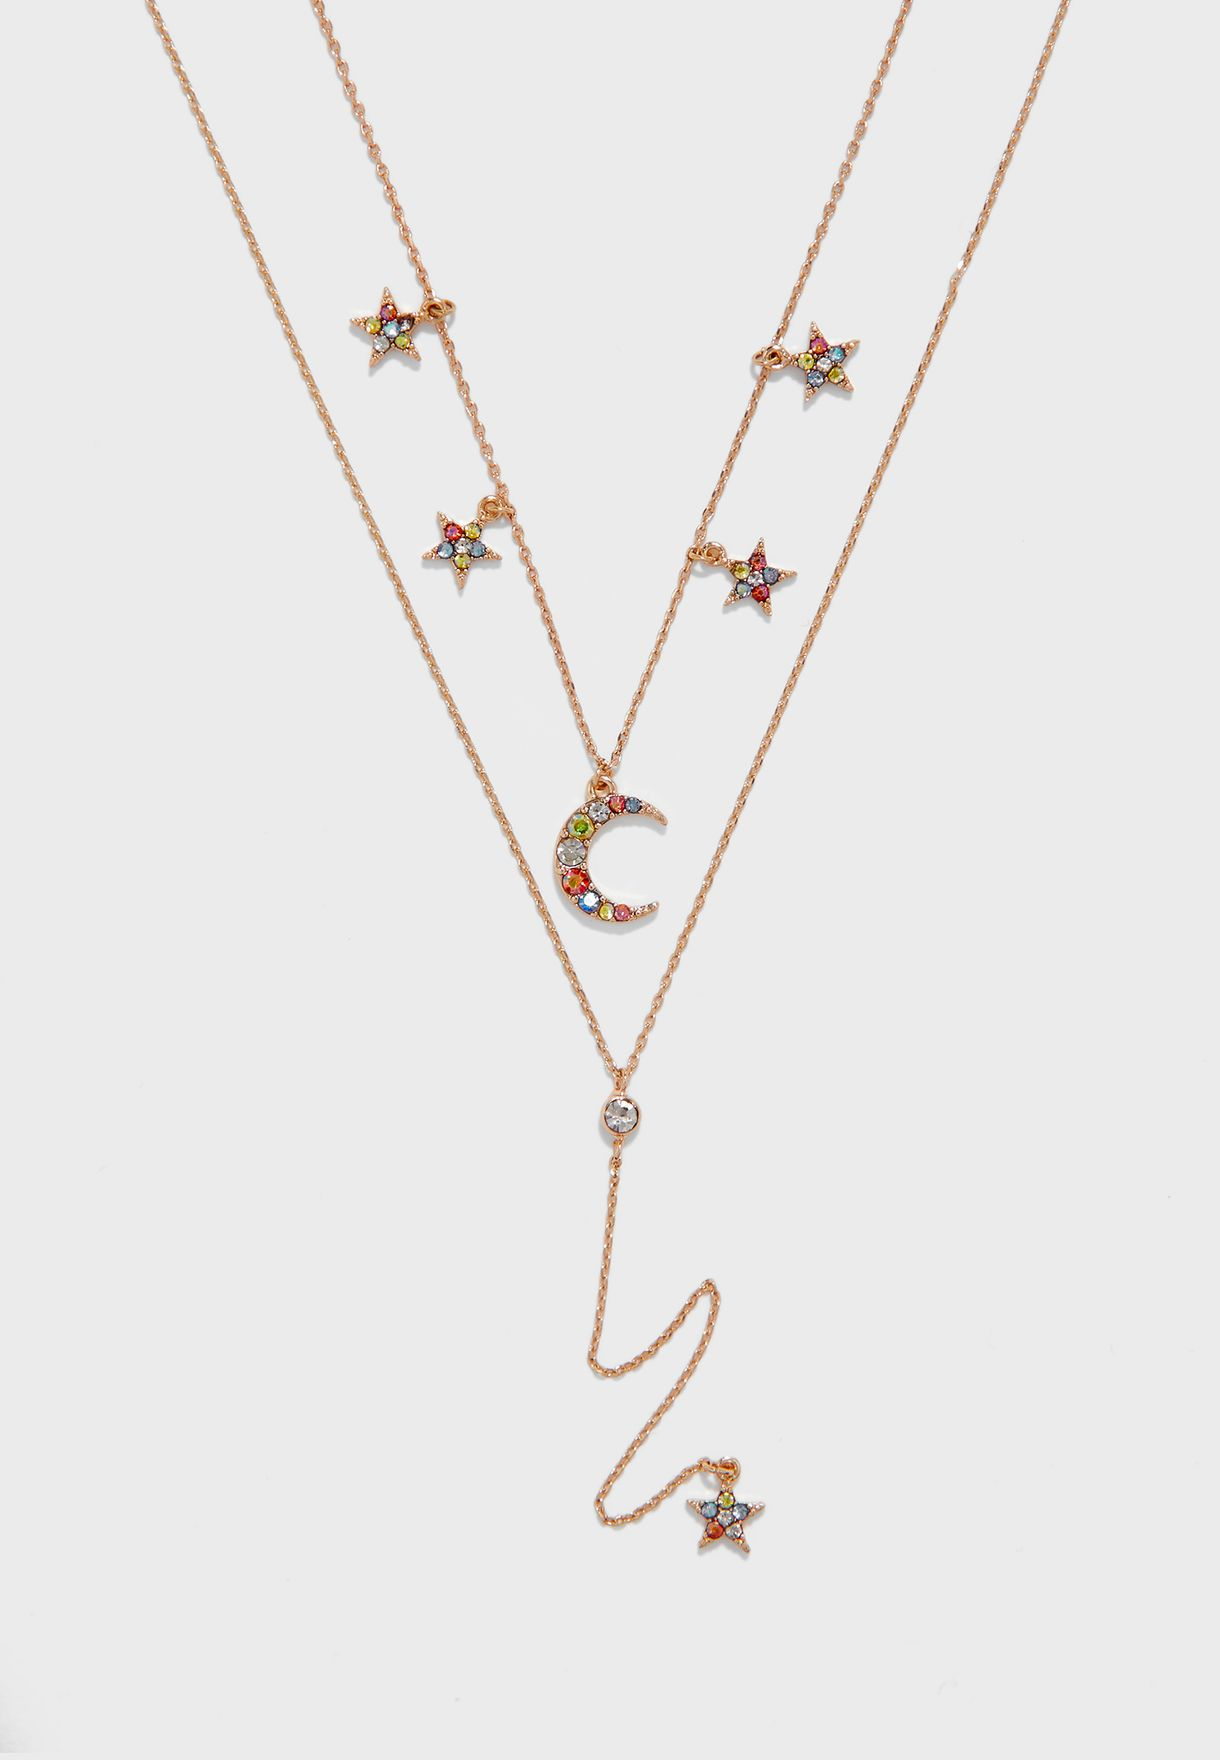 Claireport Necklace